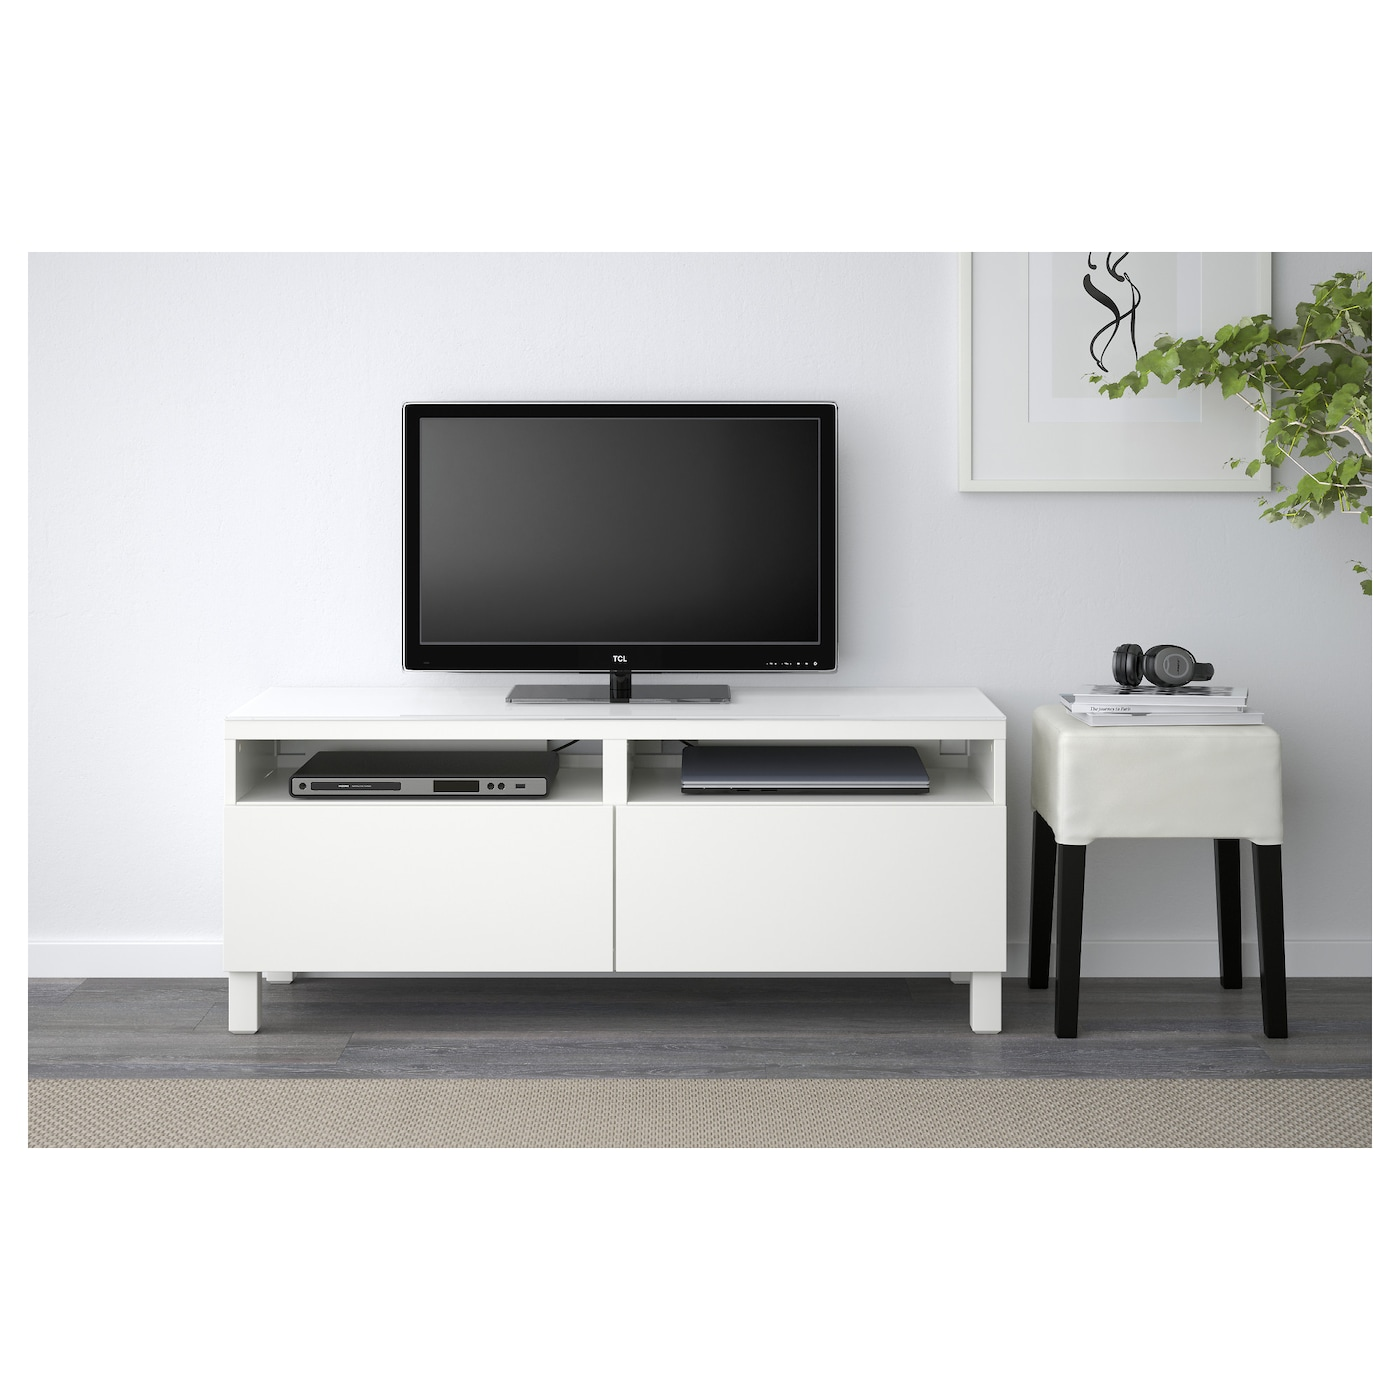 ikea besta tv stand BESTÅ TV bench with drawers Lappviken white 120 x 40 x 48 cm   IKEA ikea besta tv stand